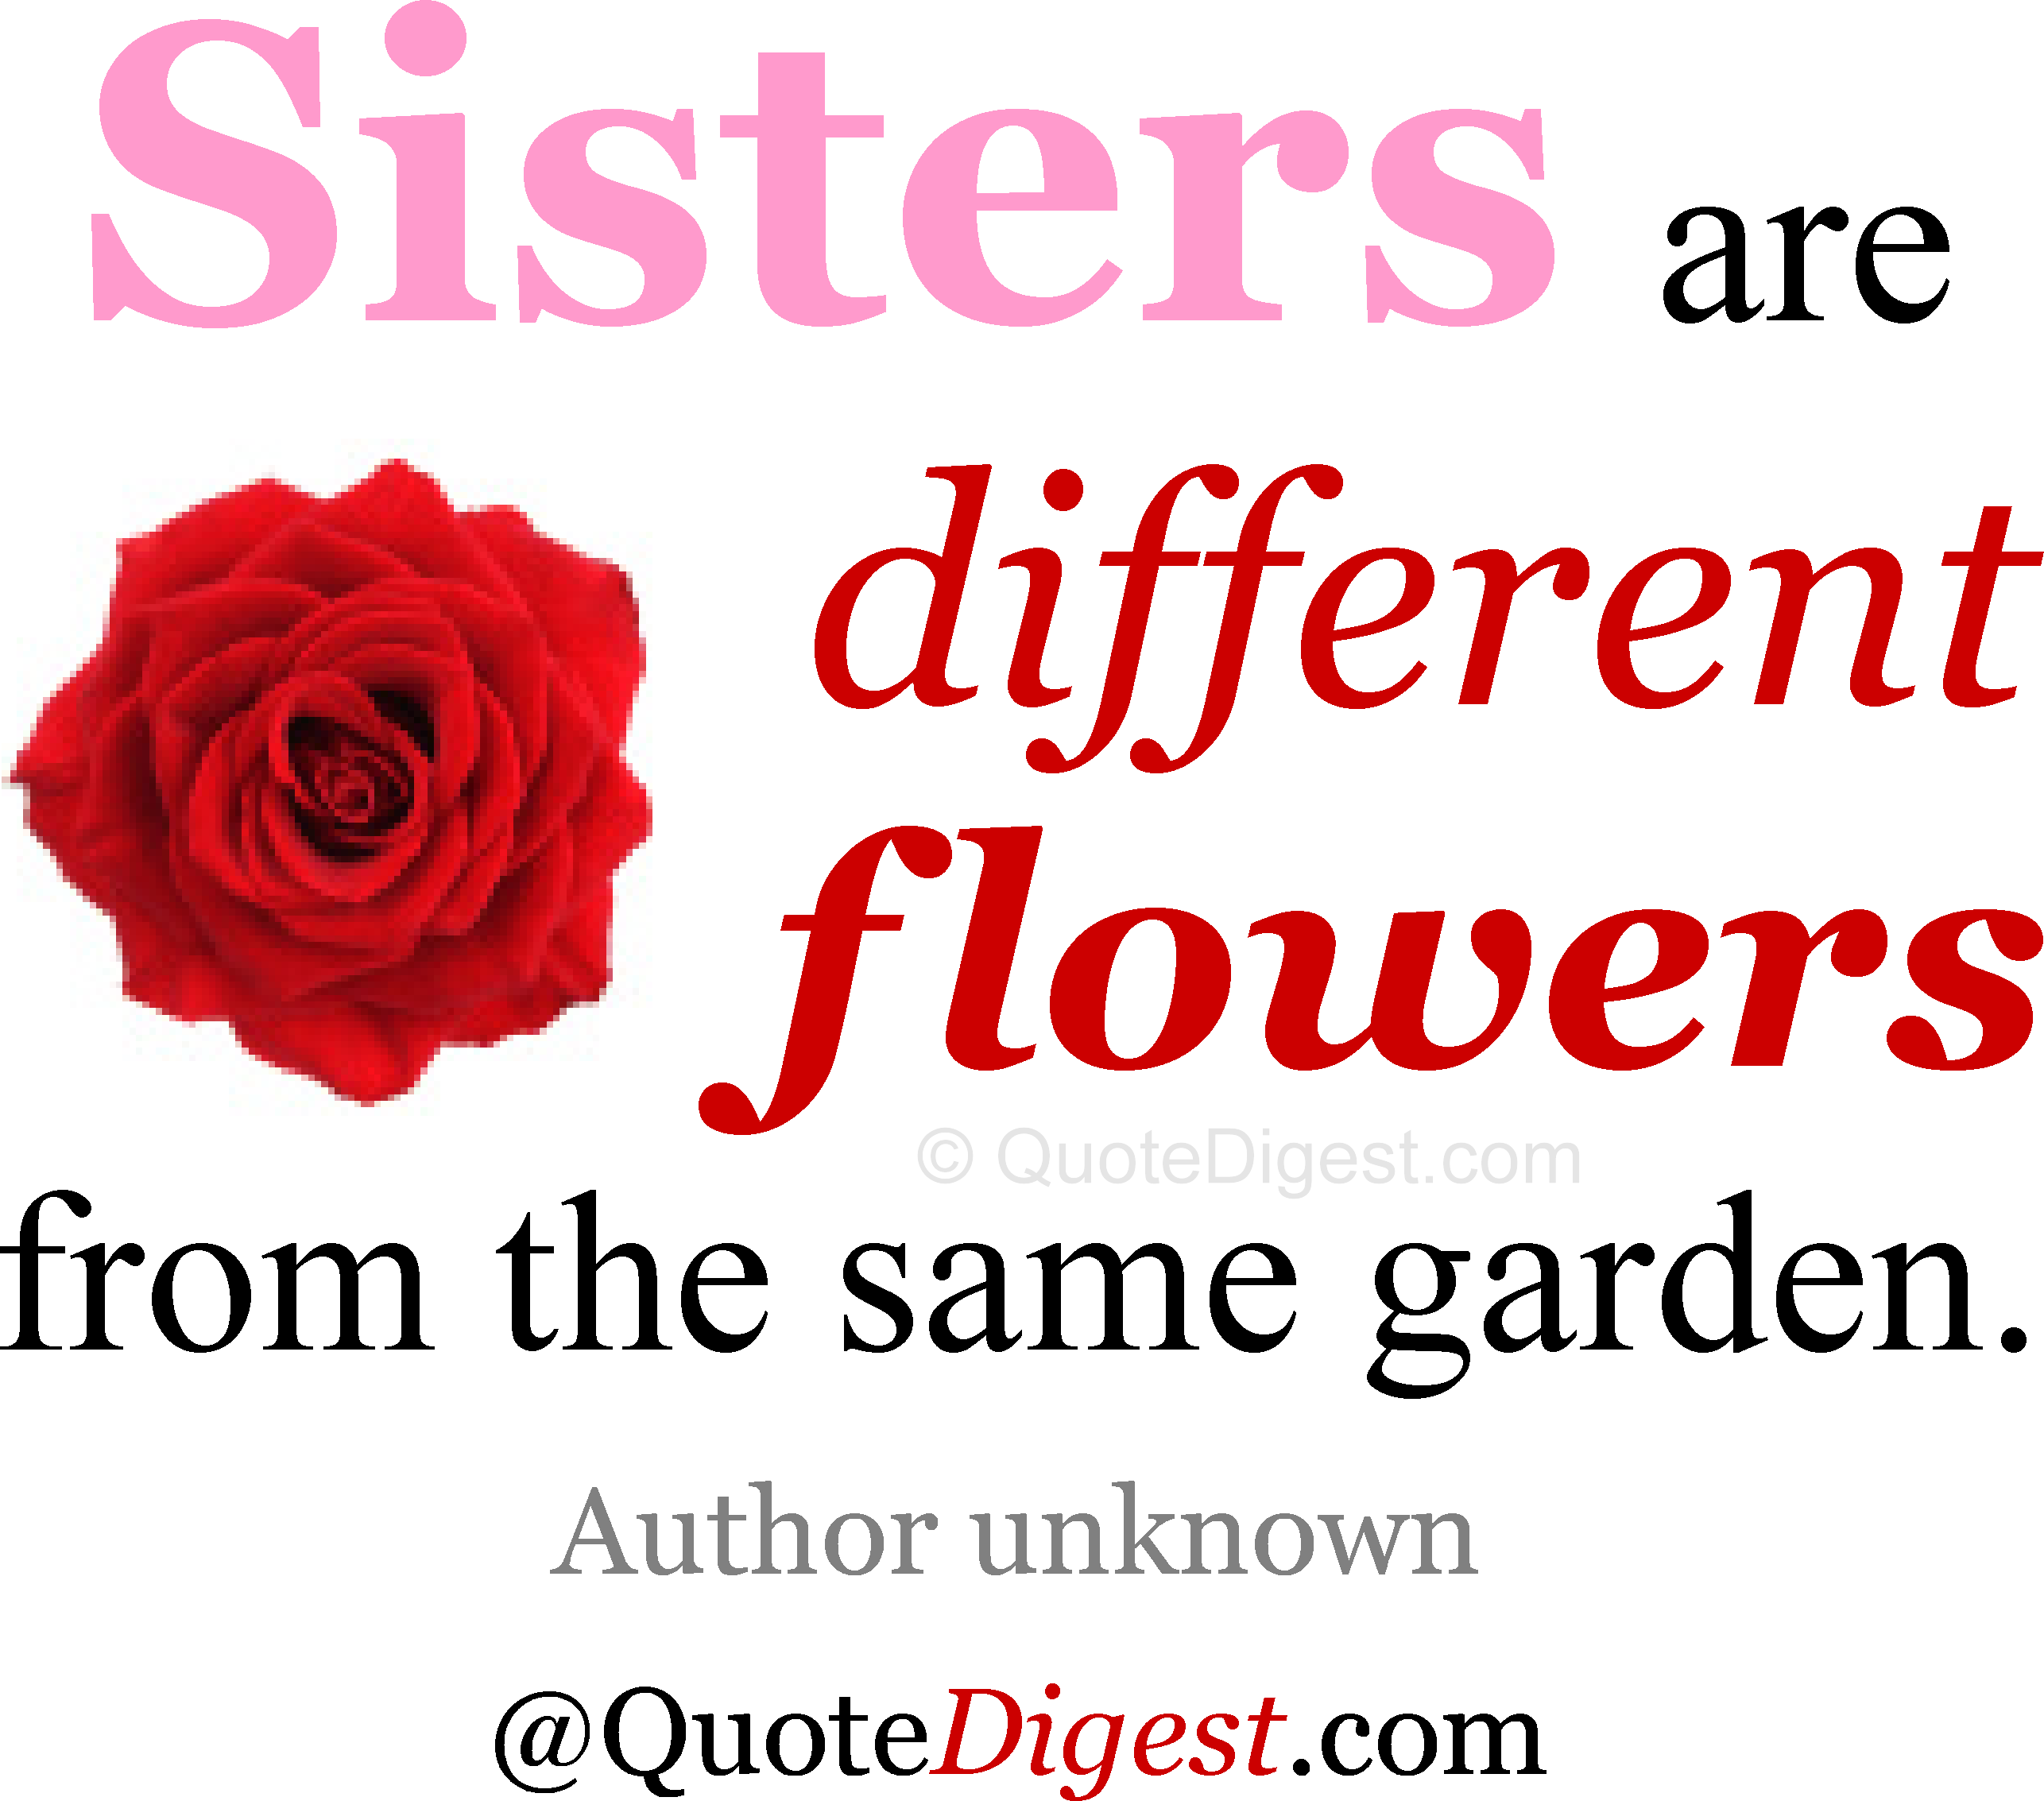 1004 best ♥ Sisters, Sisters ♥ images on Pinterest ... |Sweet Big Sister Quotes About Sisters